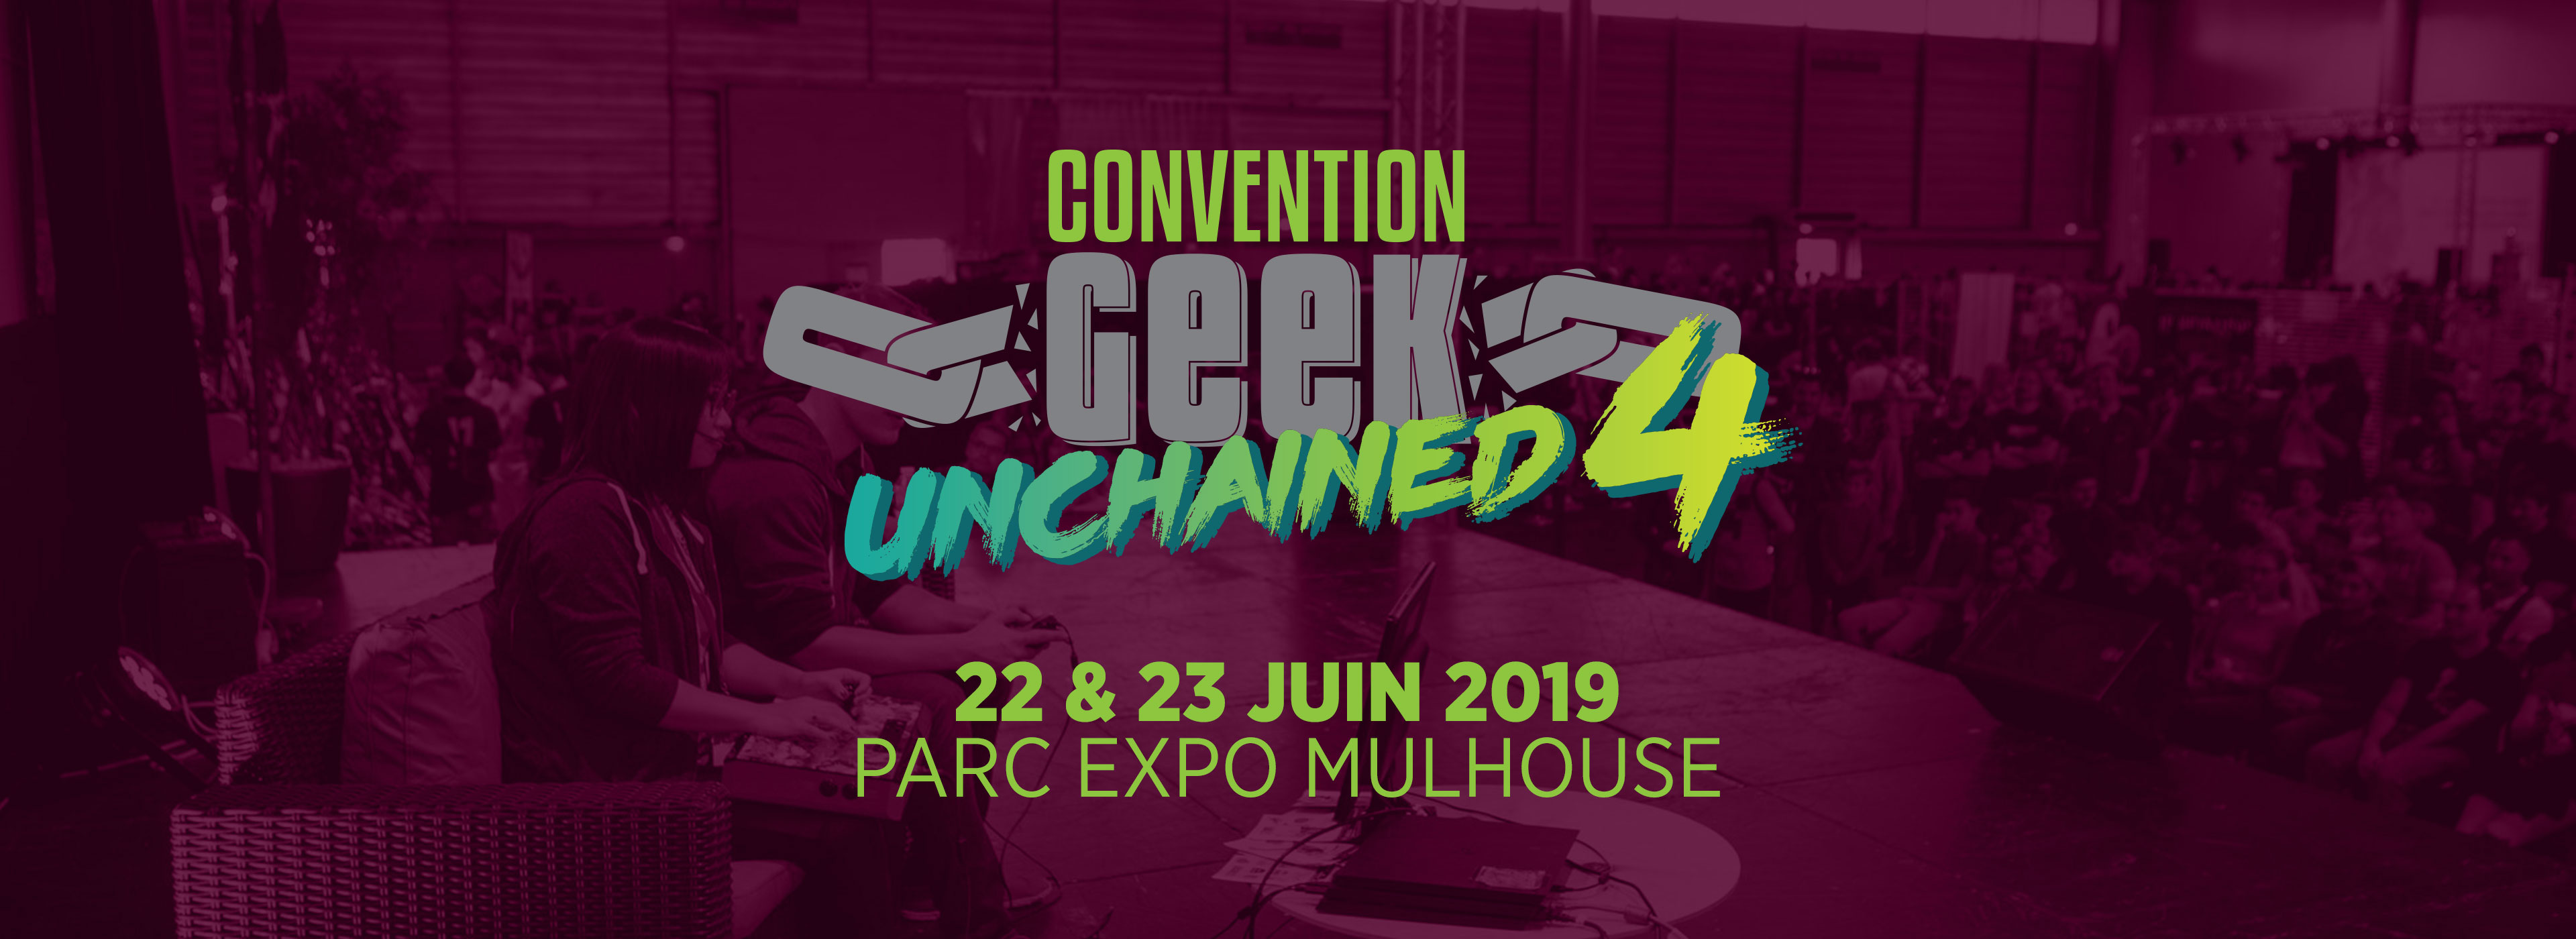 Convention Geek Unchained 4 - Parc Expo Mulhouse - 22 & 23 Juin 2019